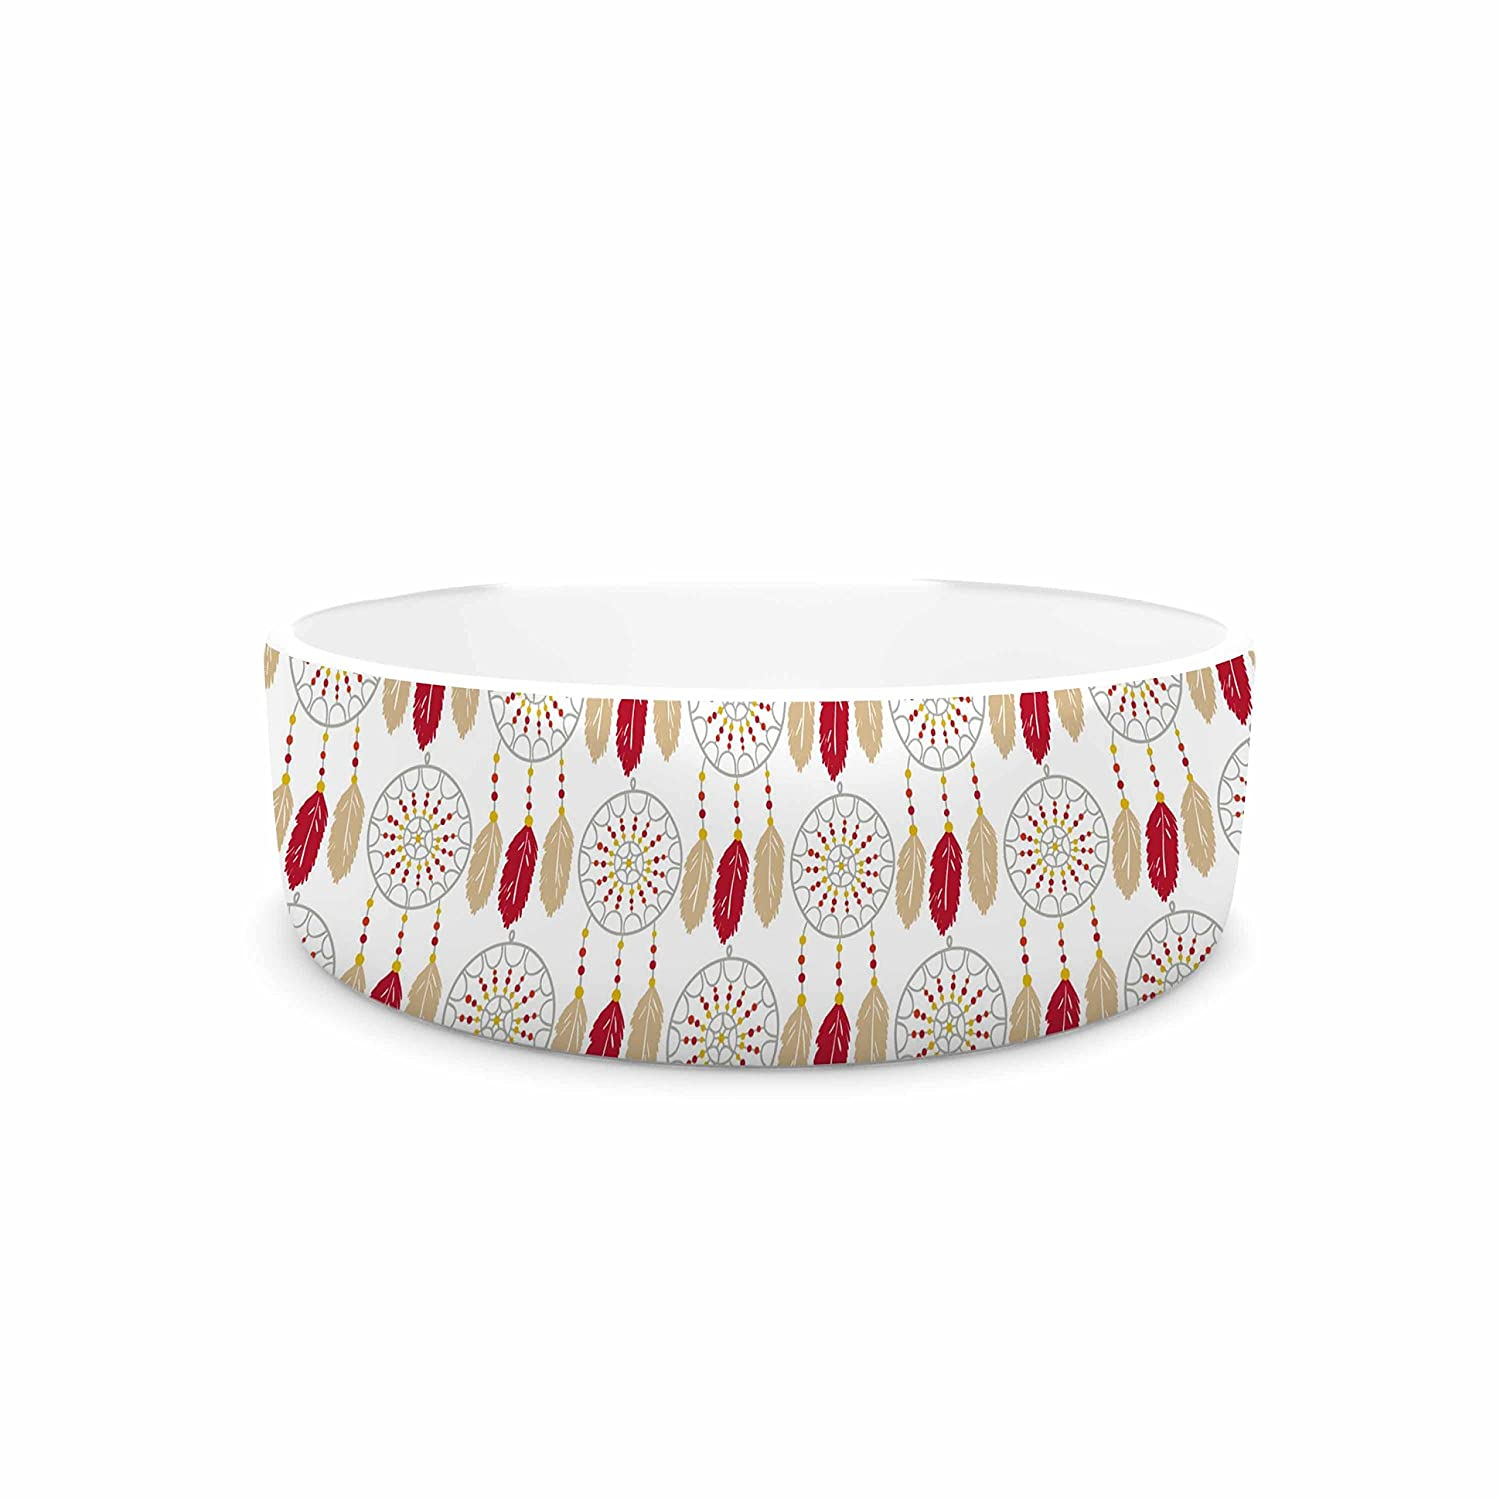 KESS InHouse Petit Griffin Dreams In color Red  gold Pet Bowl, 7